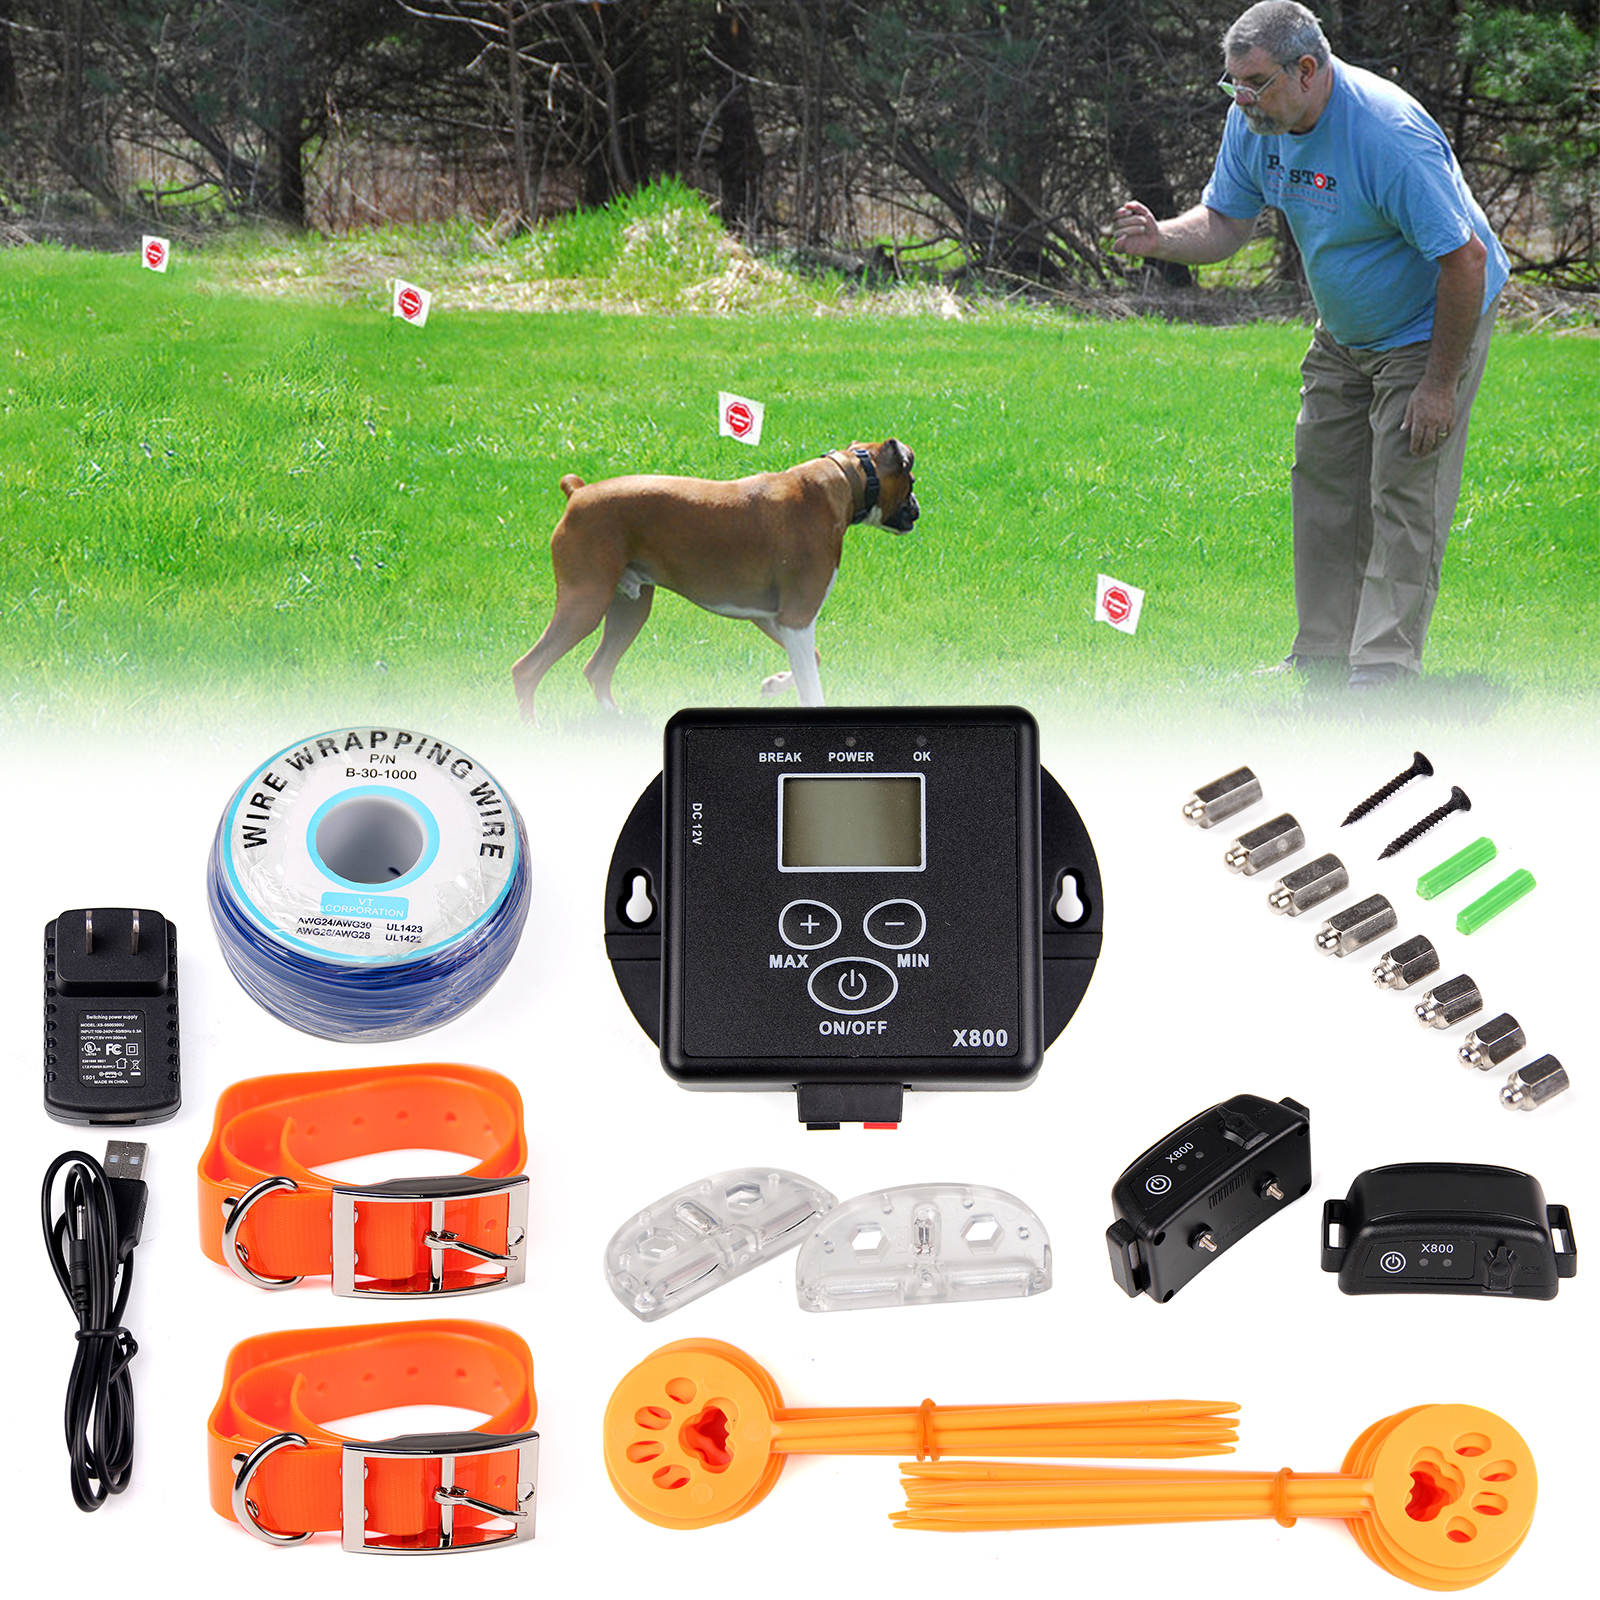 PENSON & CO. In-Ground Electric Digital Dog Pet Fence Sho...